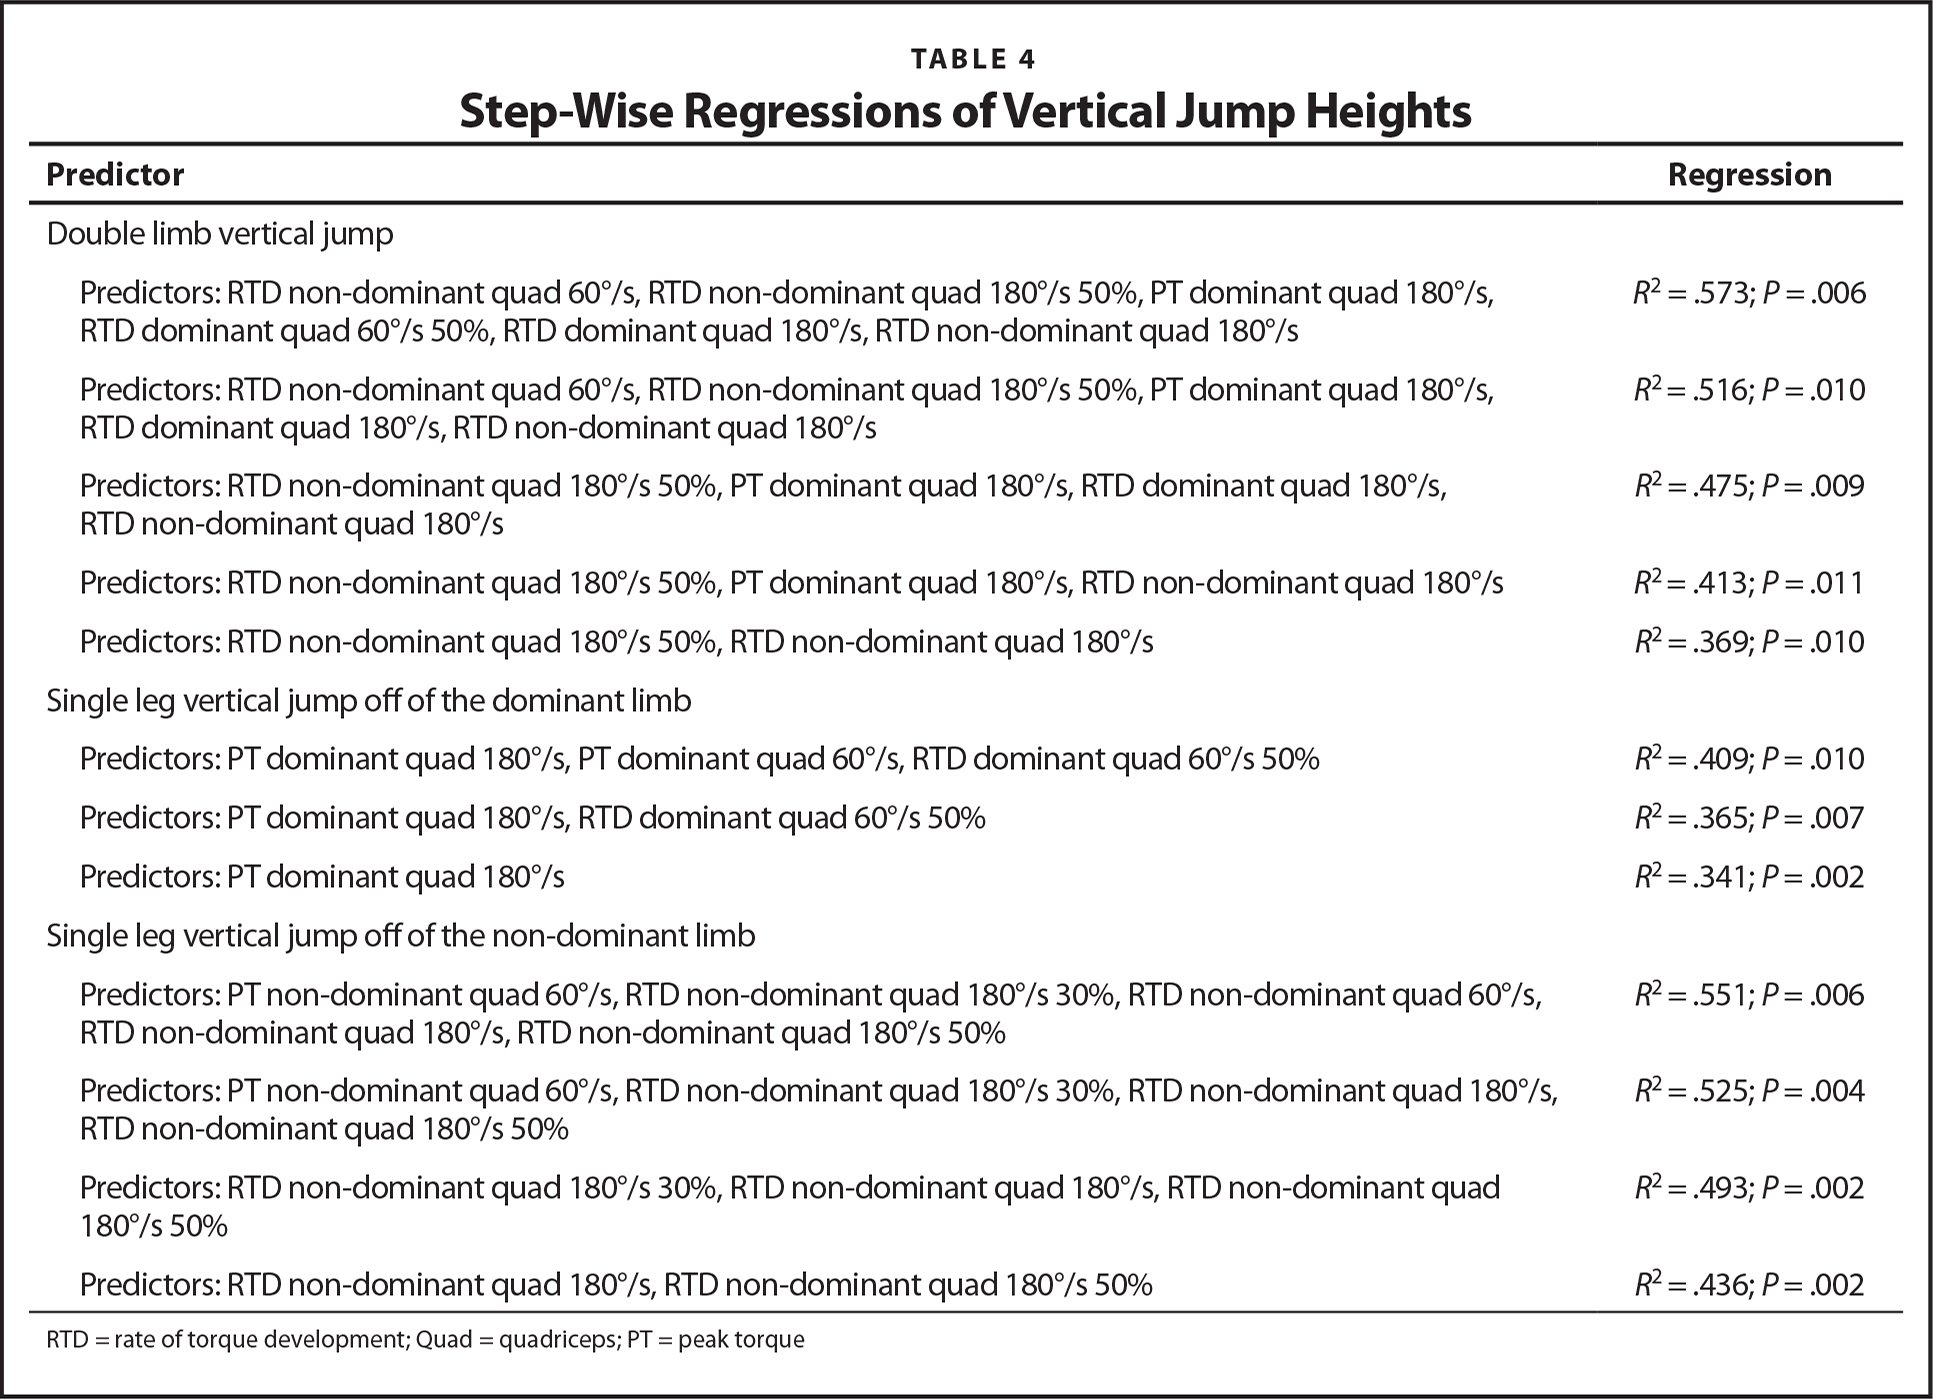 Step-Wise Regressions of Vertical Jump Heights